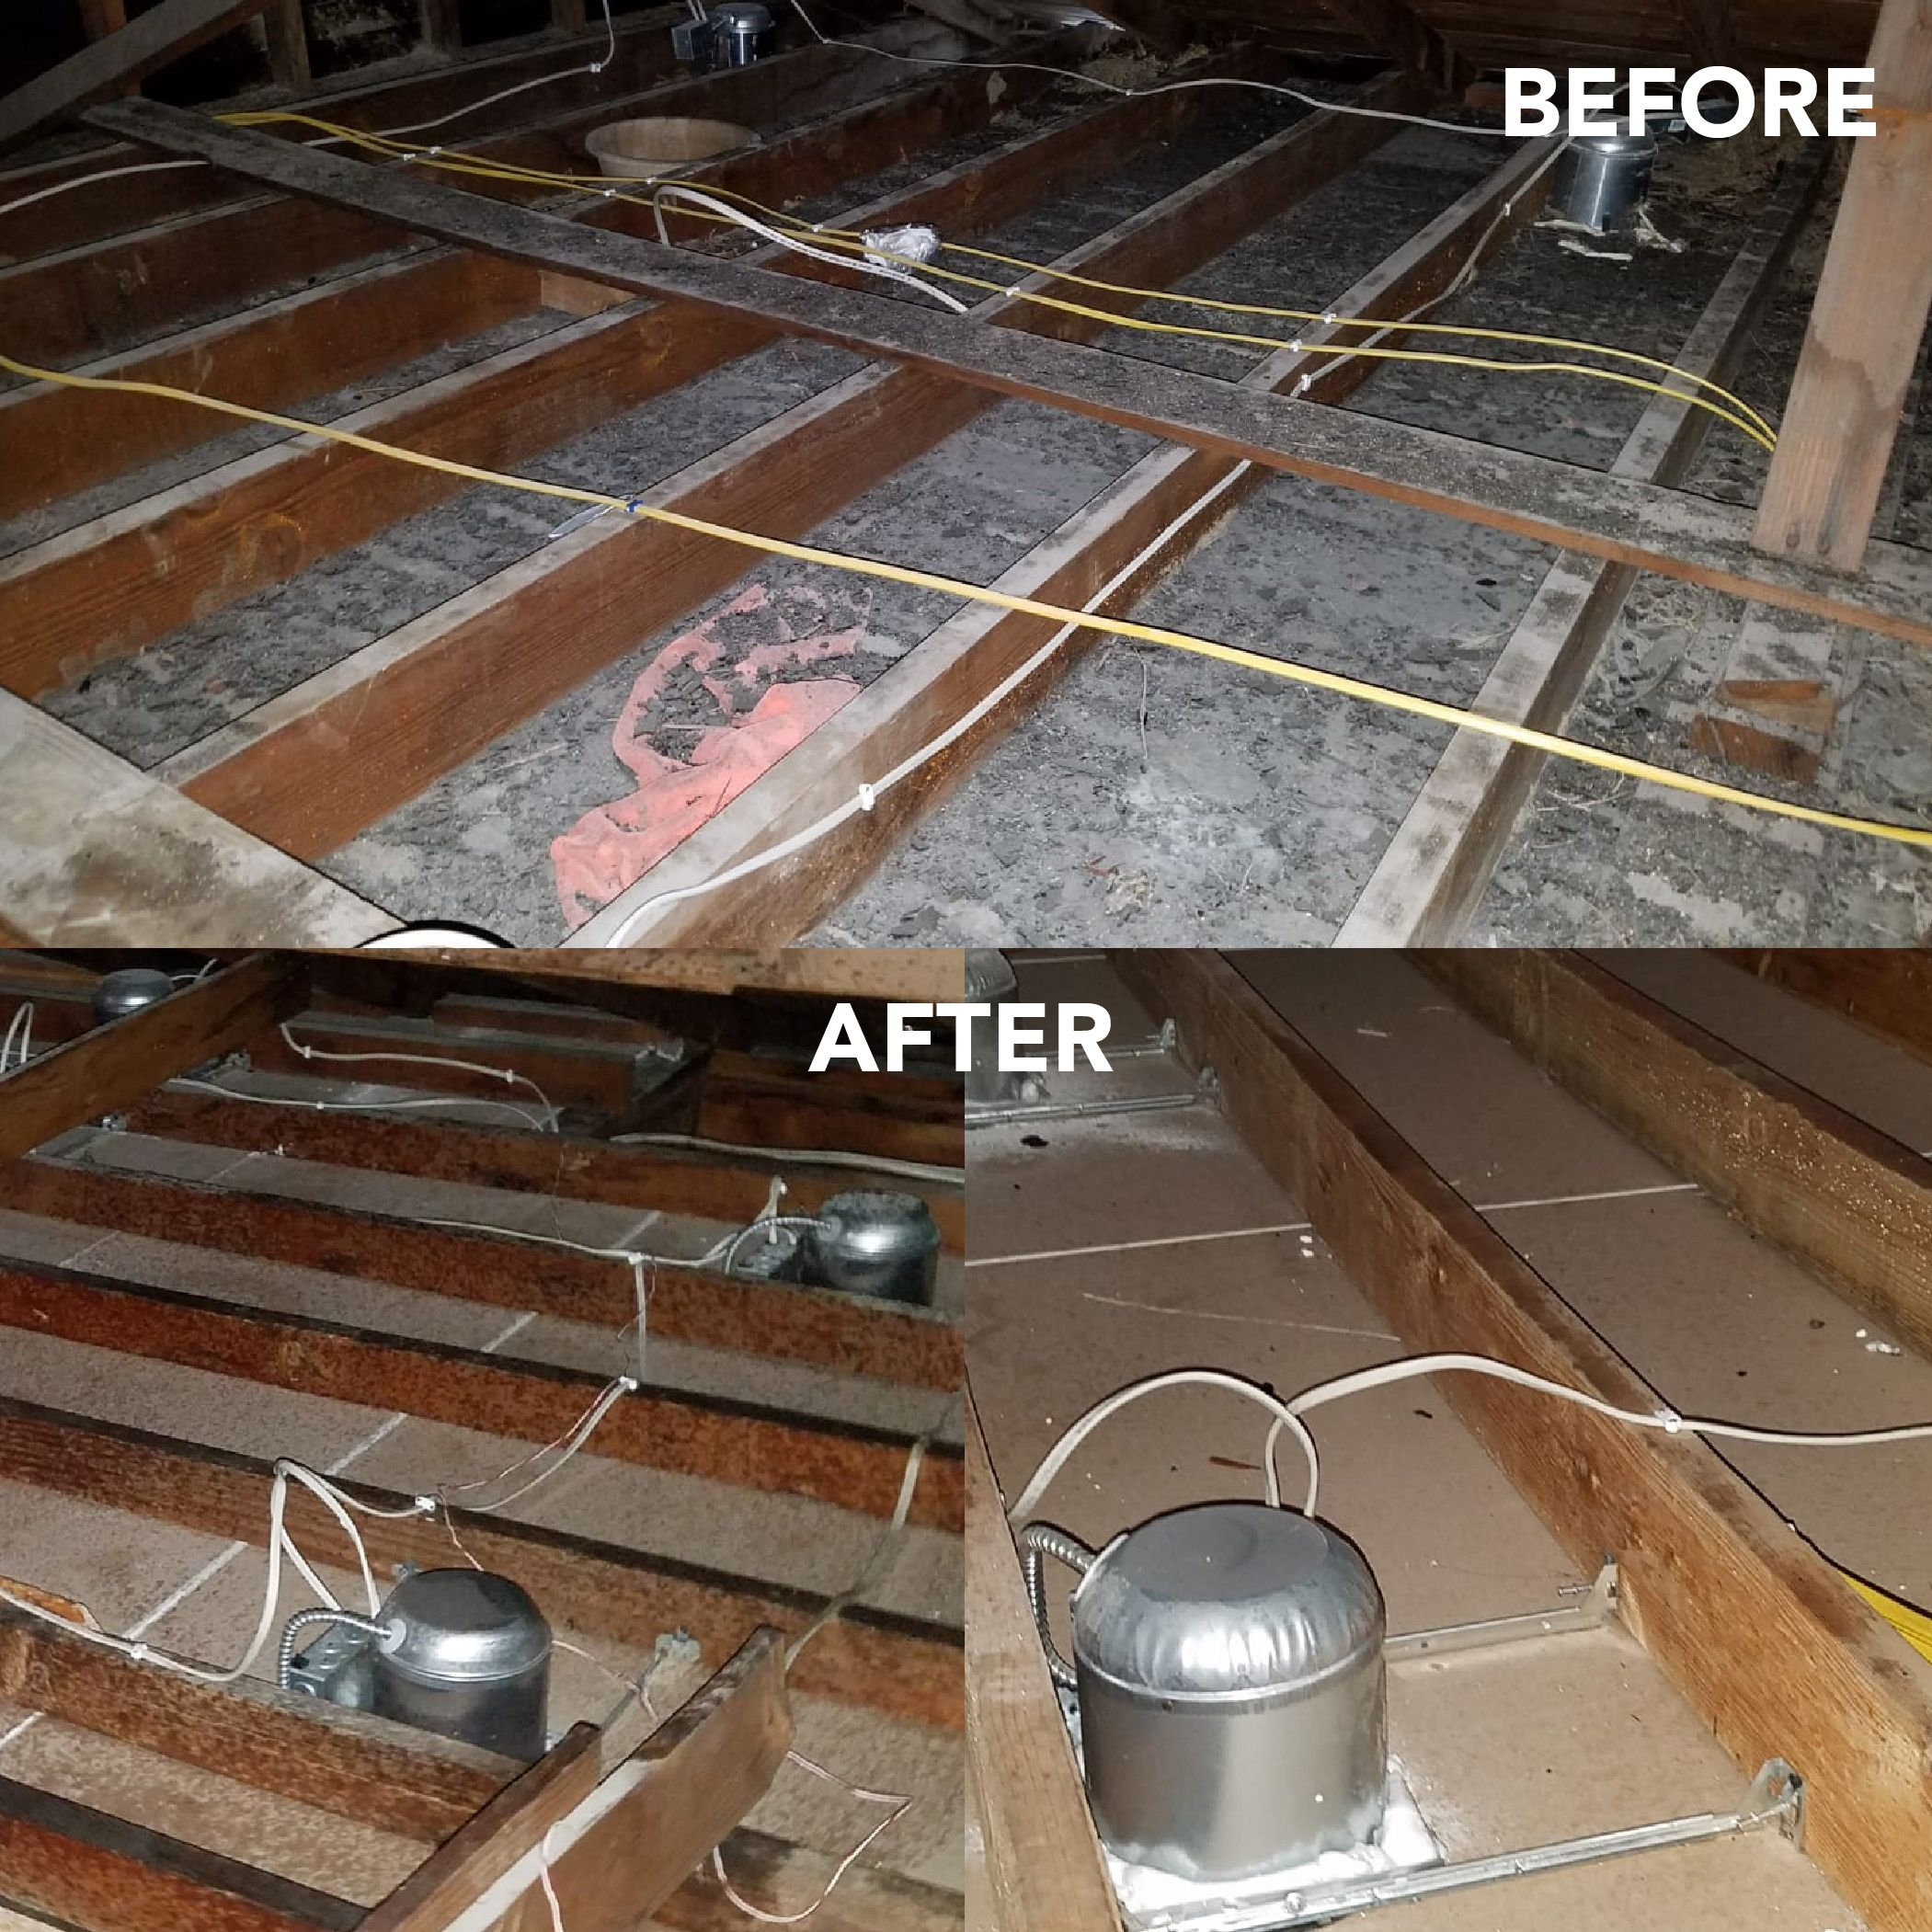 Attic Cleaning Attic Insulation Removal Insulation Removal Home Insulation